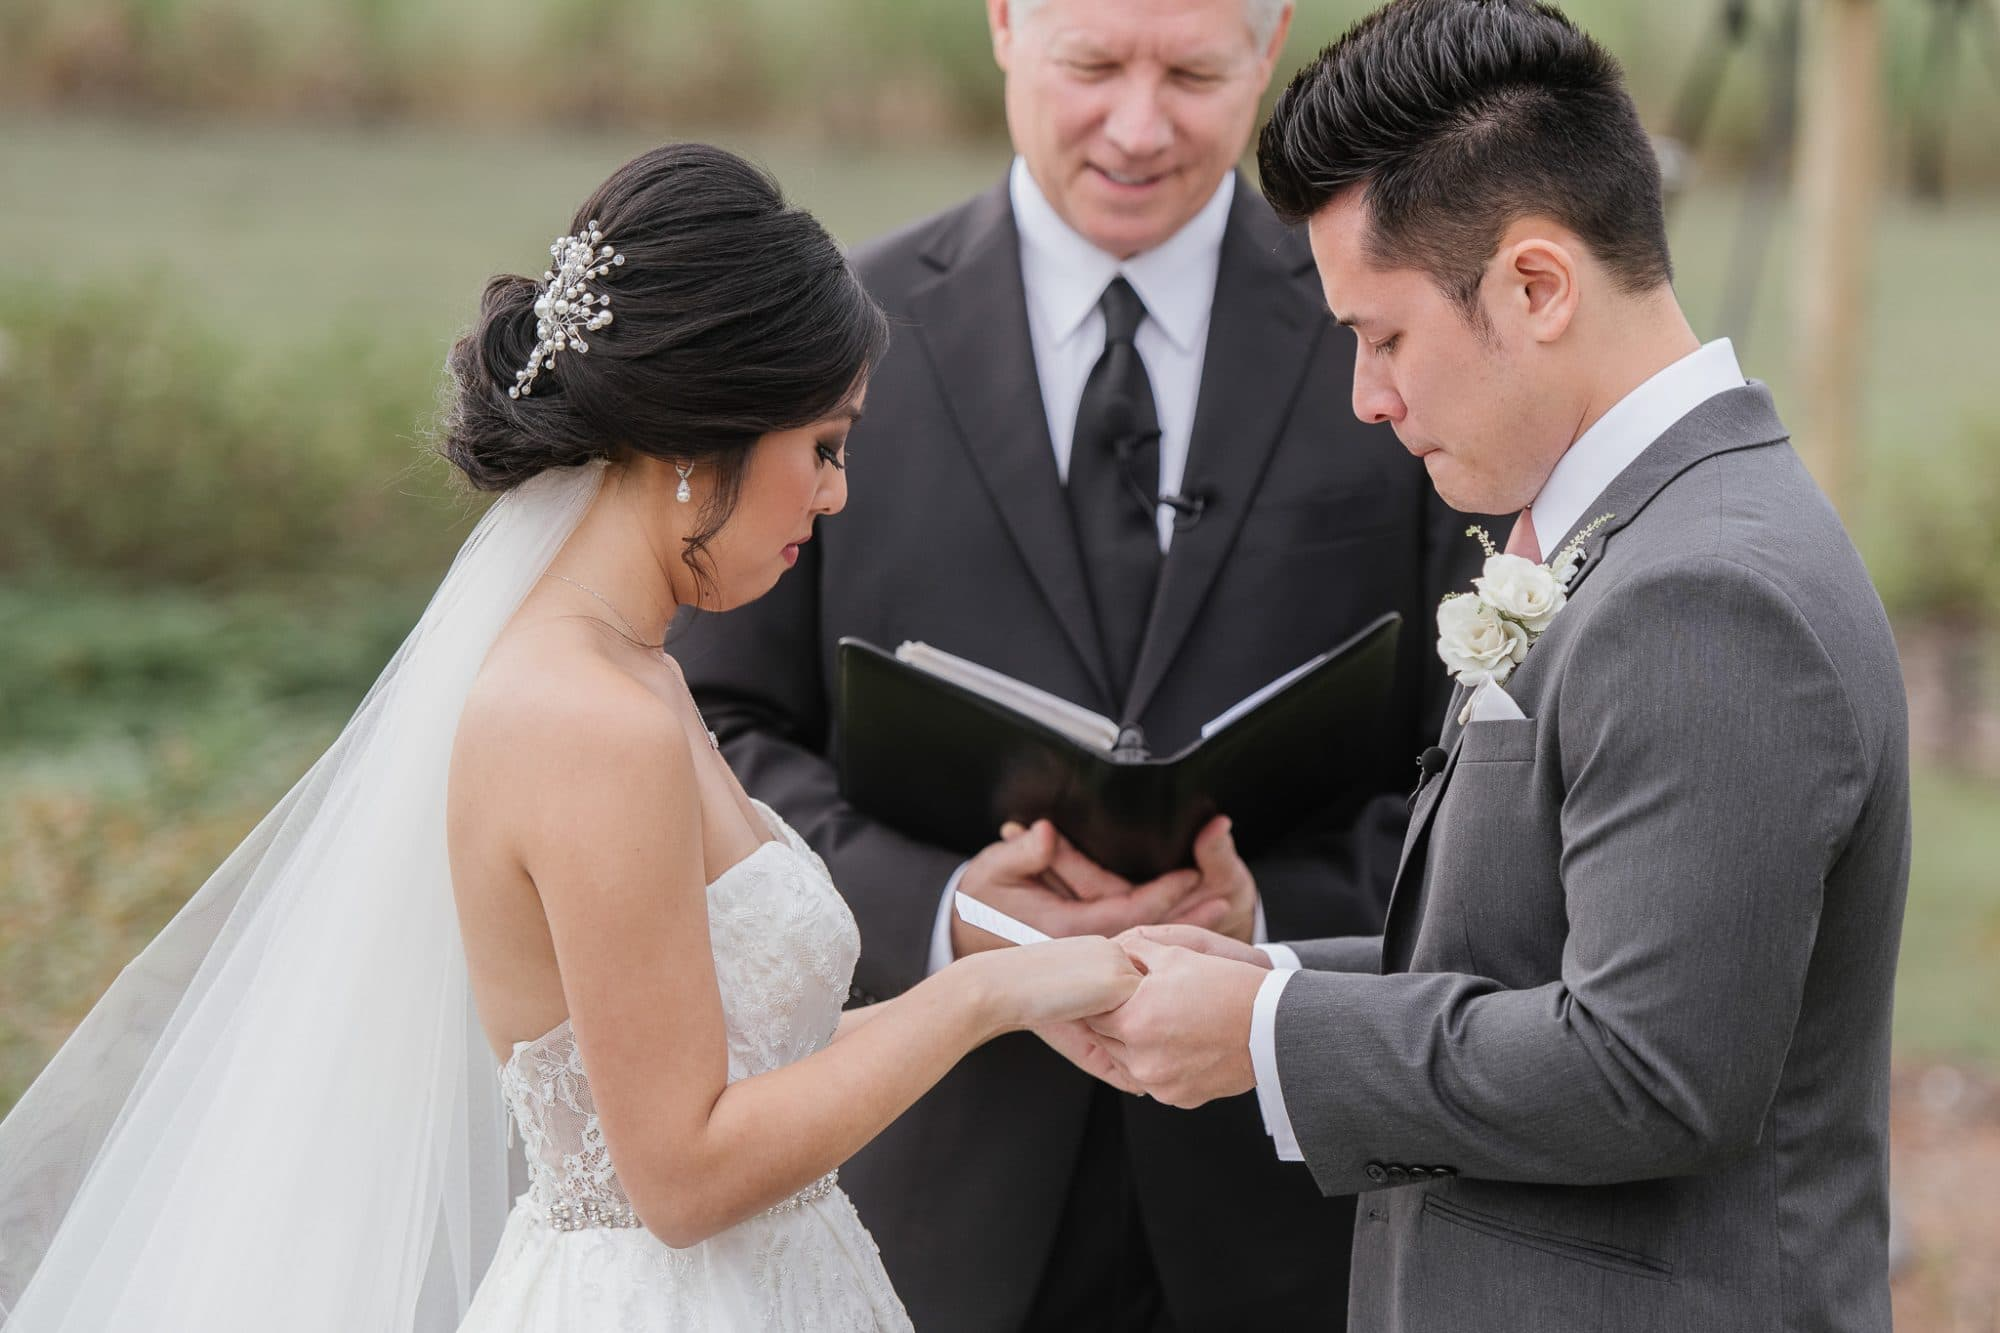 Pearl White Events - attractive Asian bride and groom holding hands during wedding ceremony